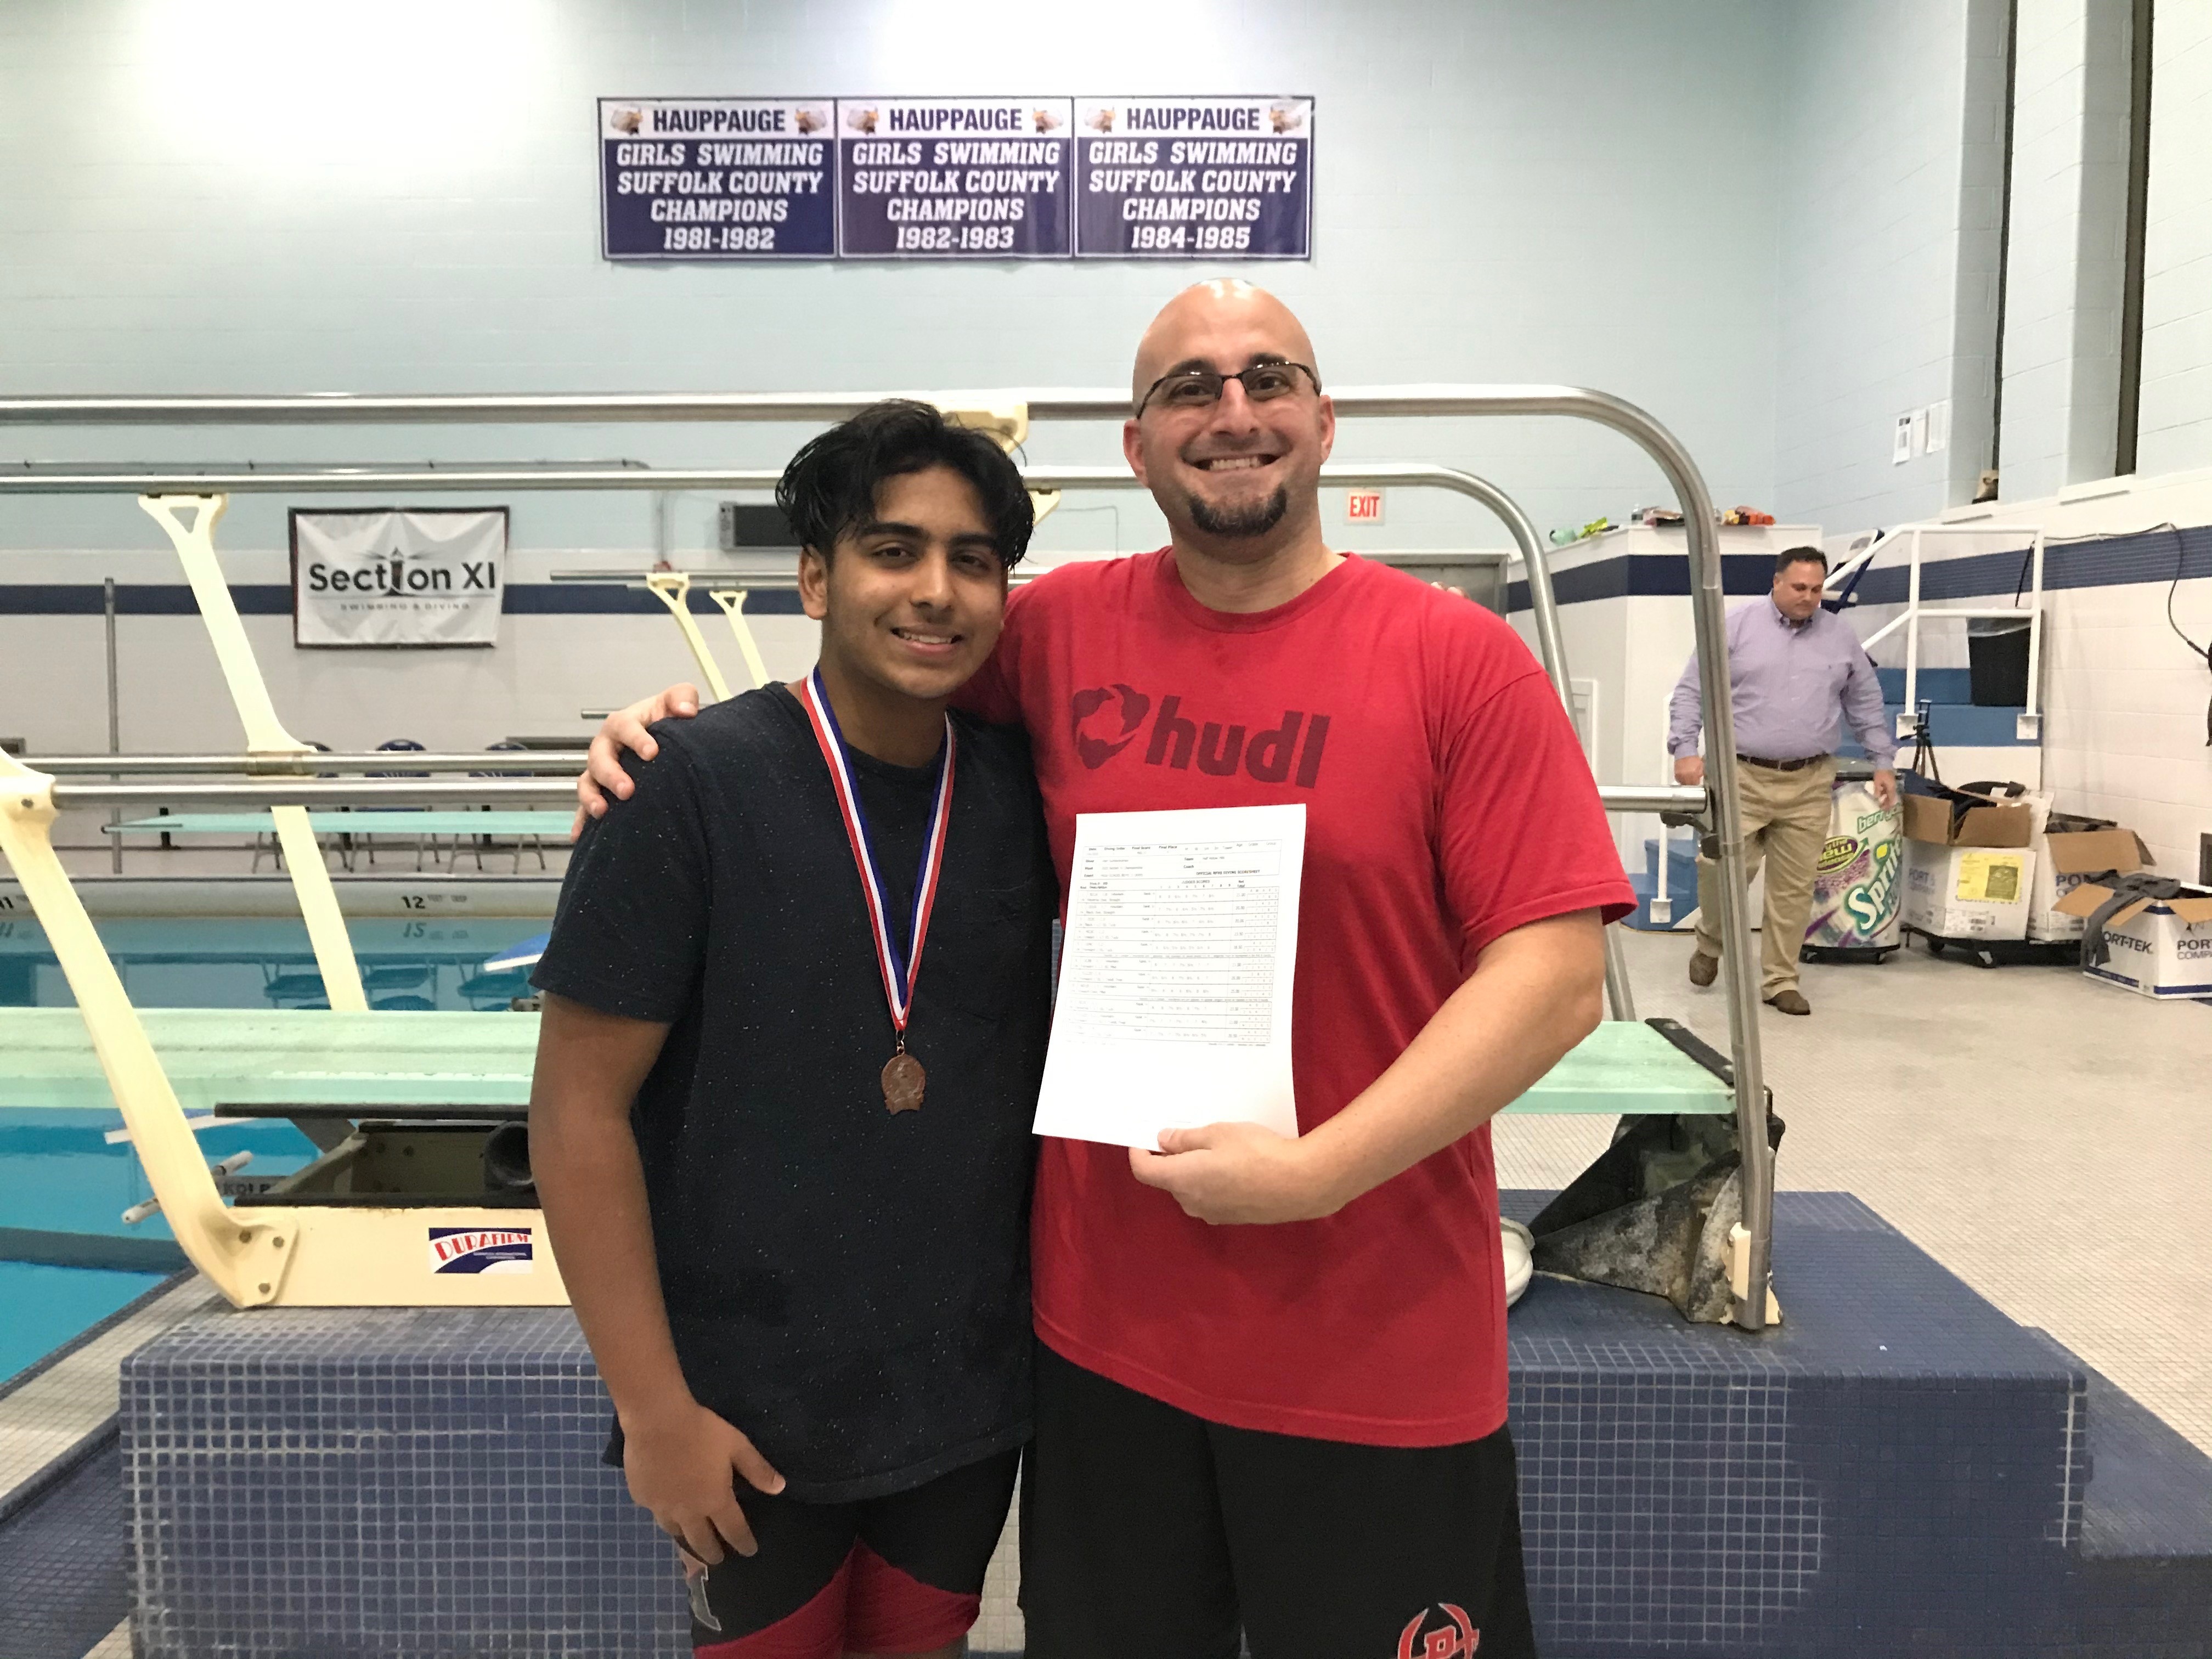 Hills West's Josh Sundararaman Becomes 4th Hills Diver Since 1997 To Qualify For State Championship